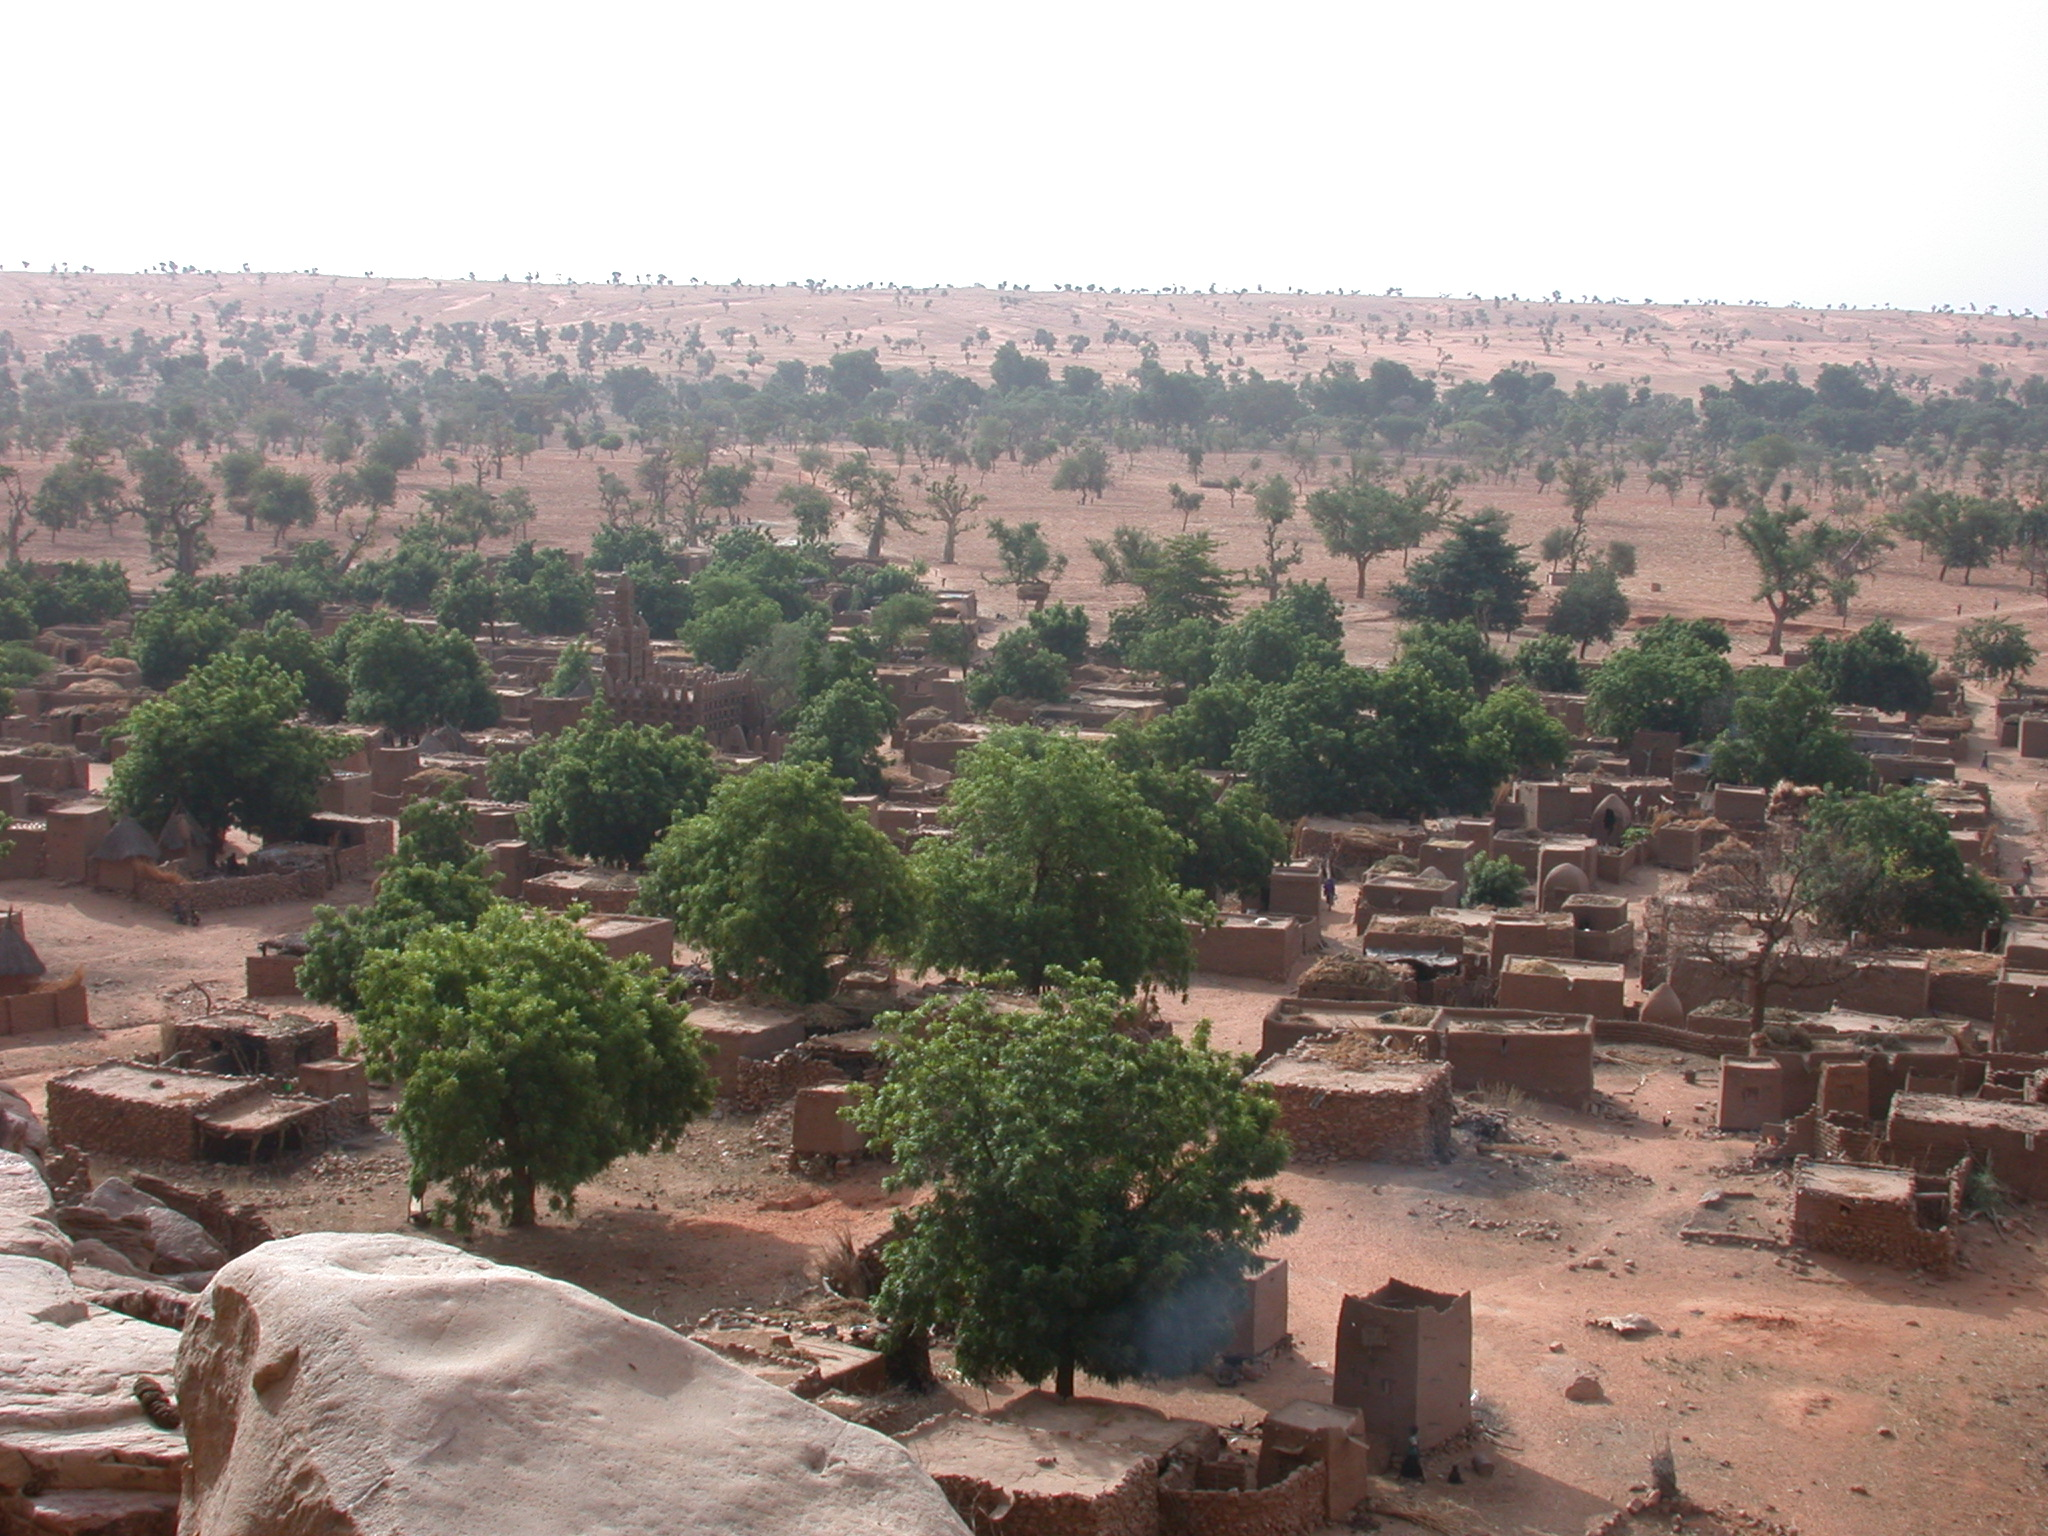 View Down From Escarpment, Tellem Village, Dogon Country, Mali